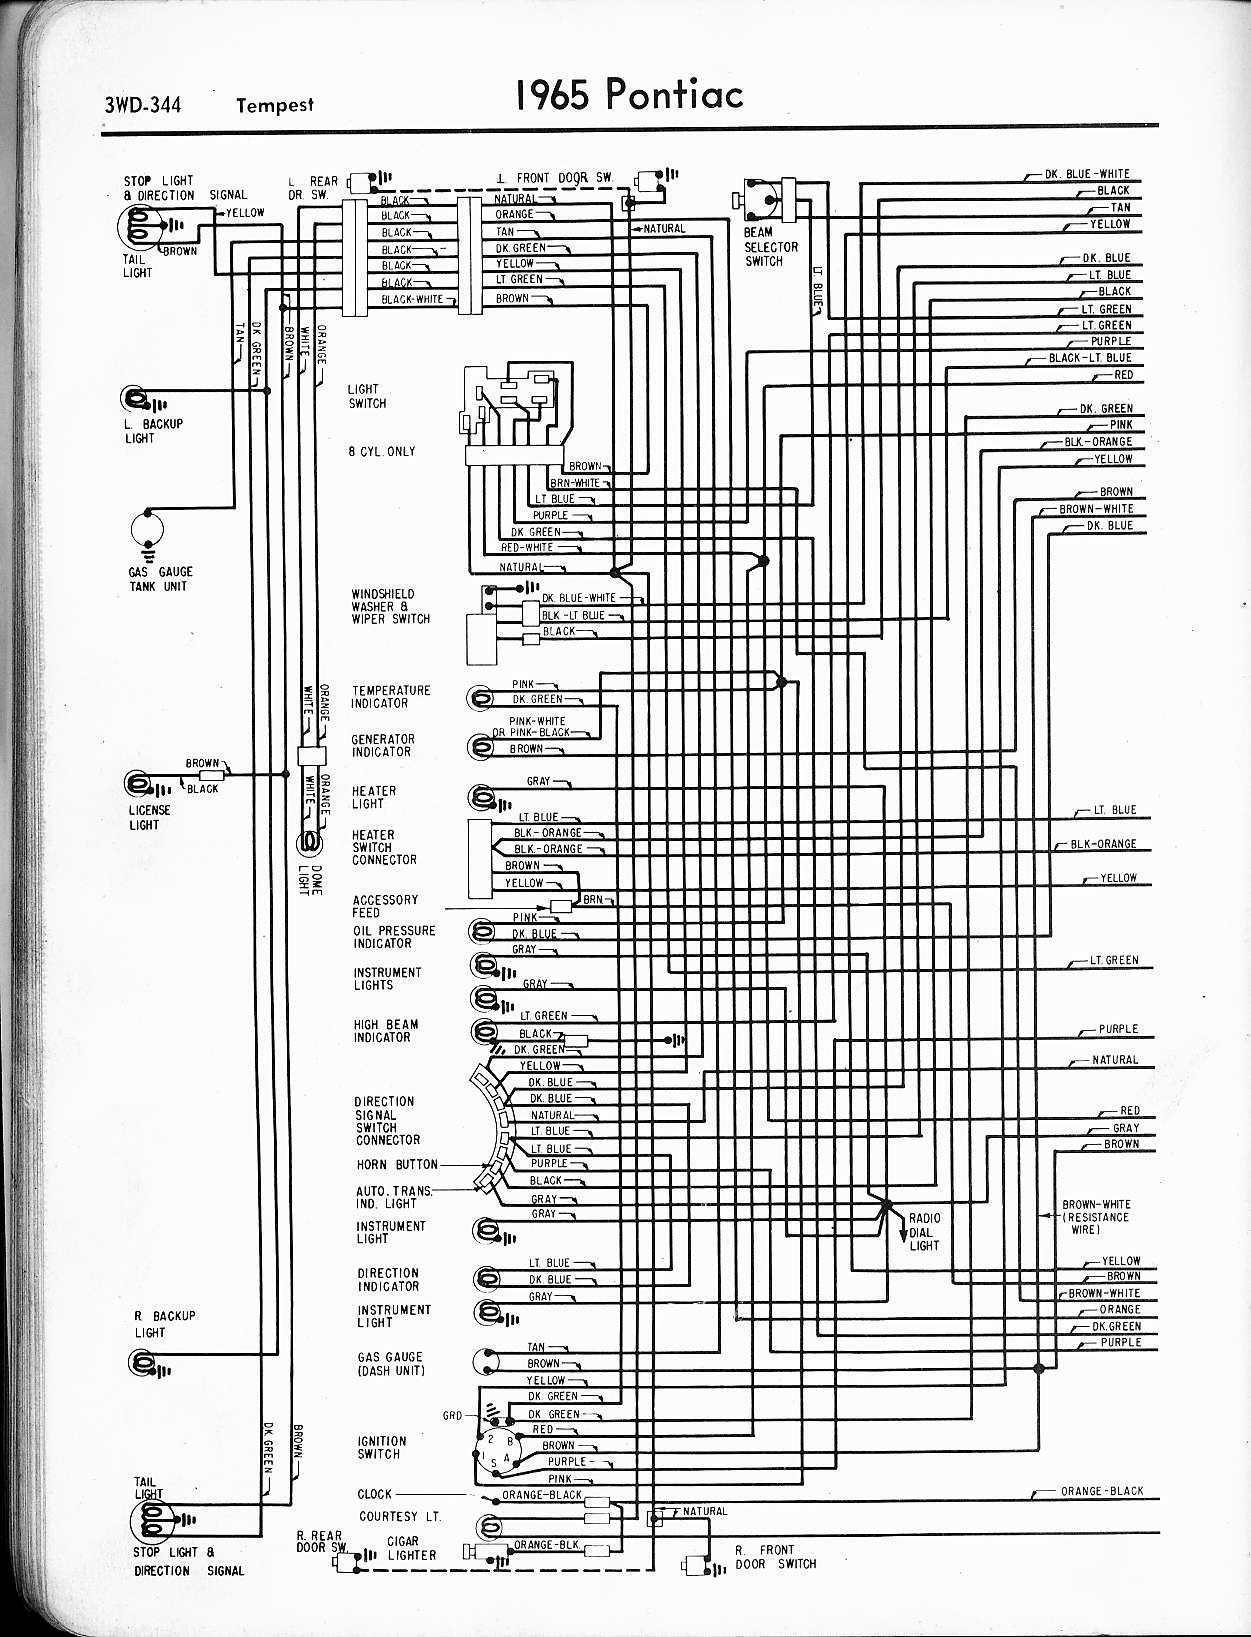 Wiring Diagram Pontiac 1966 - Wiring Diagram